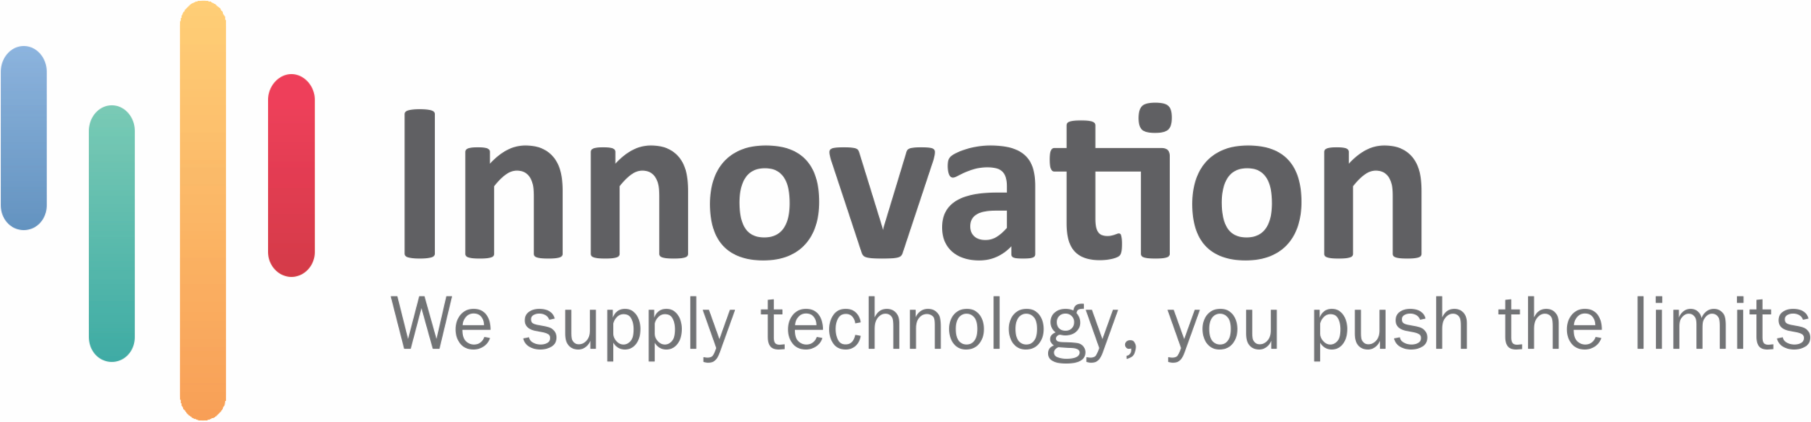 InnovationCOM